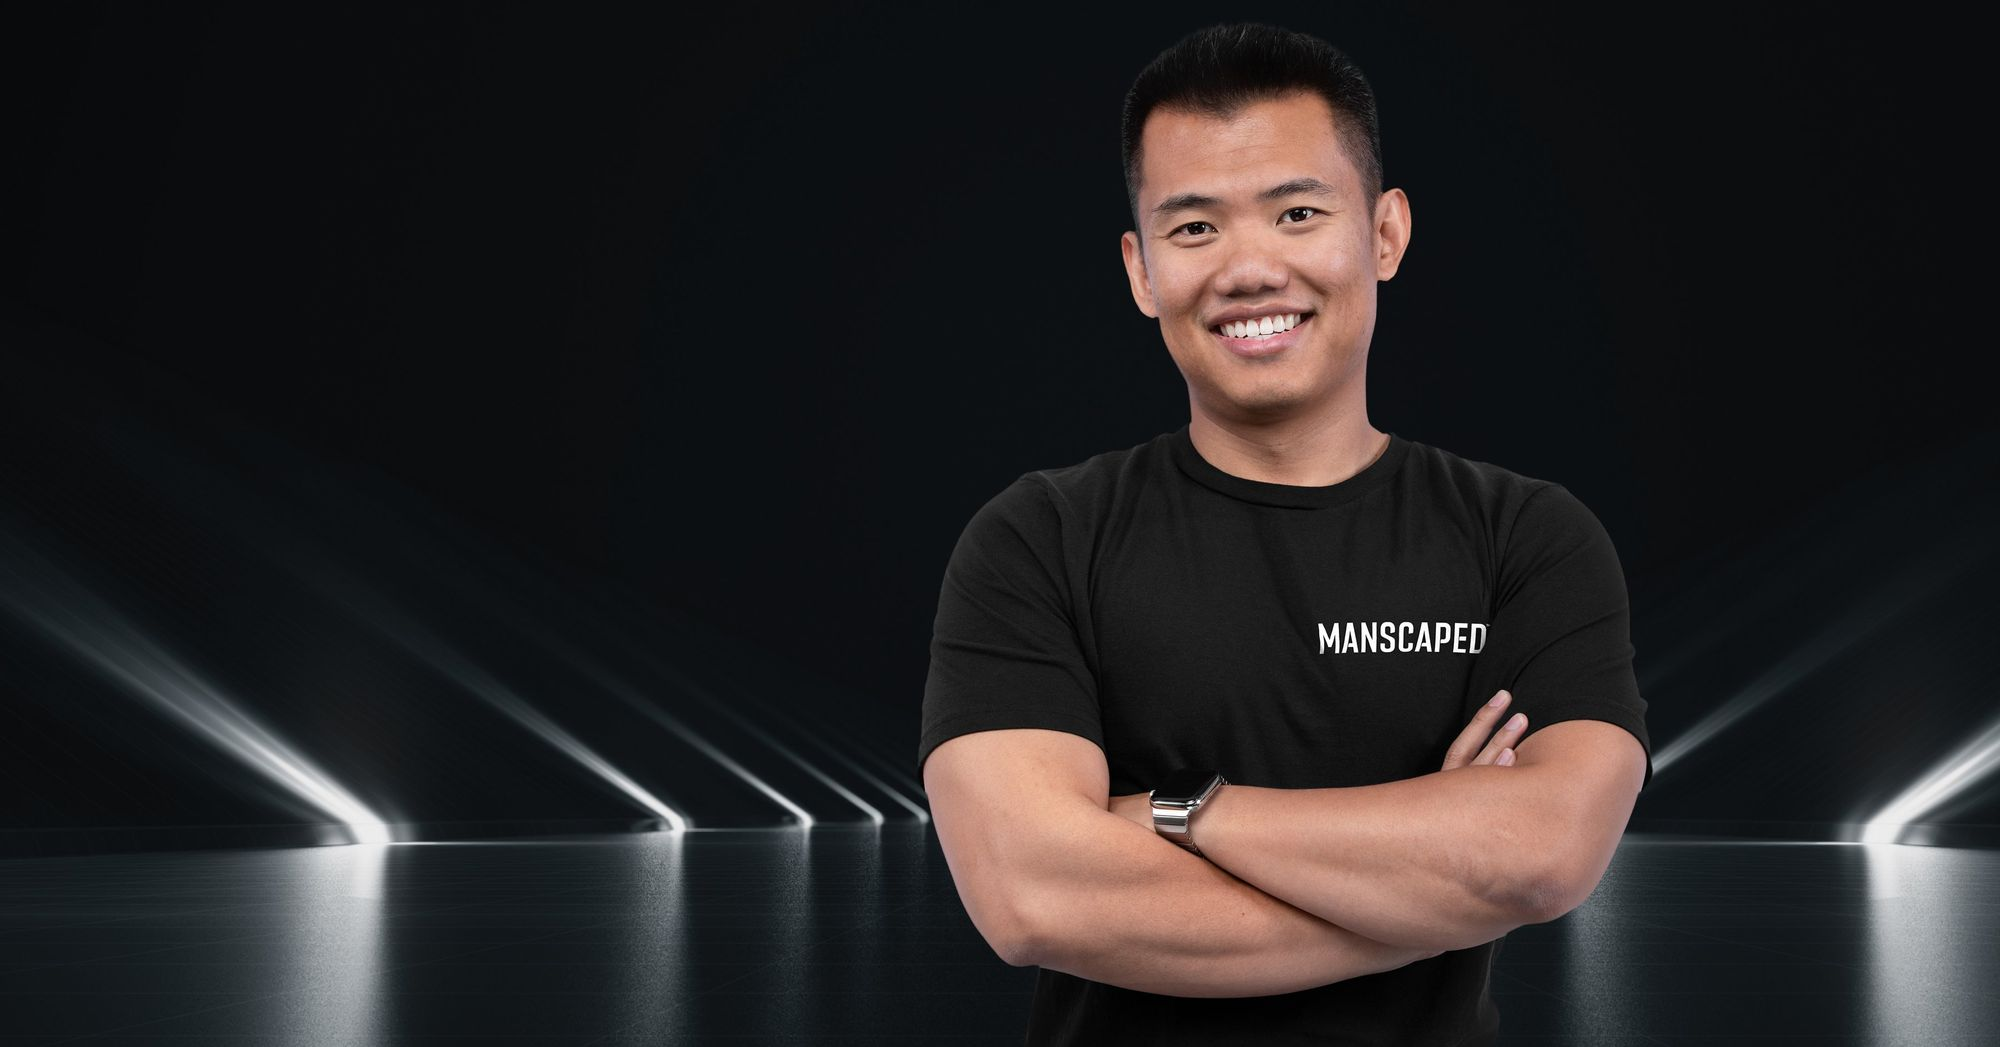 Paul Tran Is The CEO of Manscaped